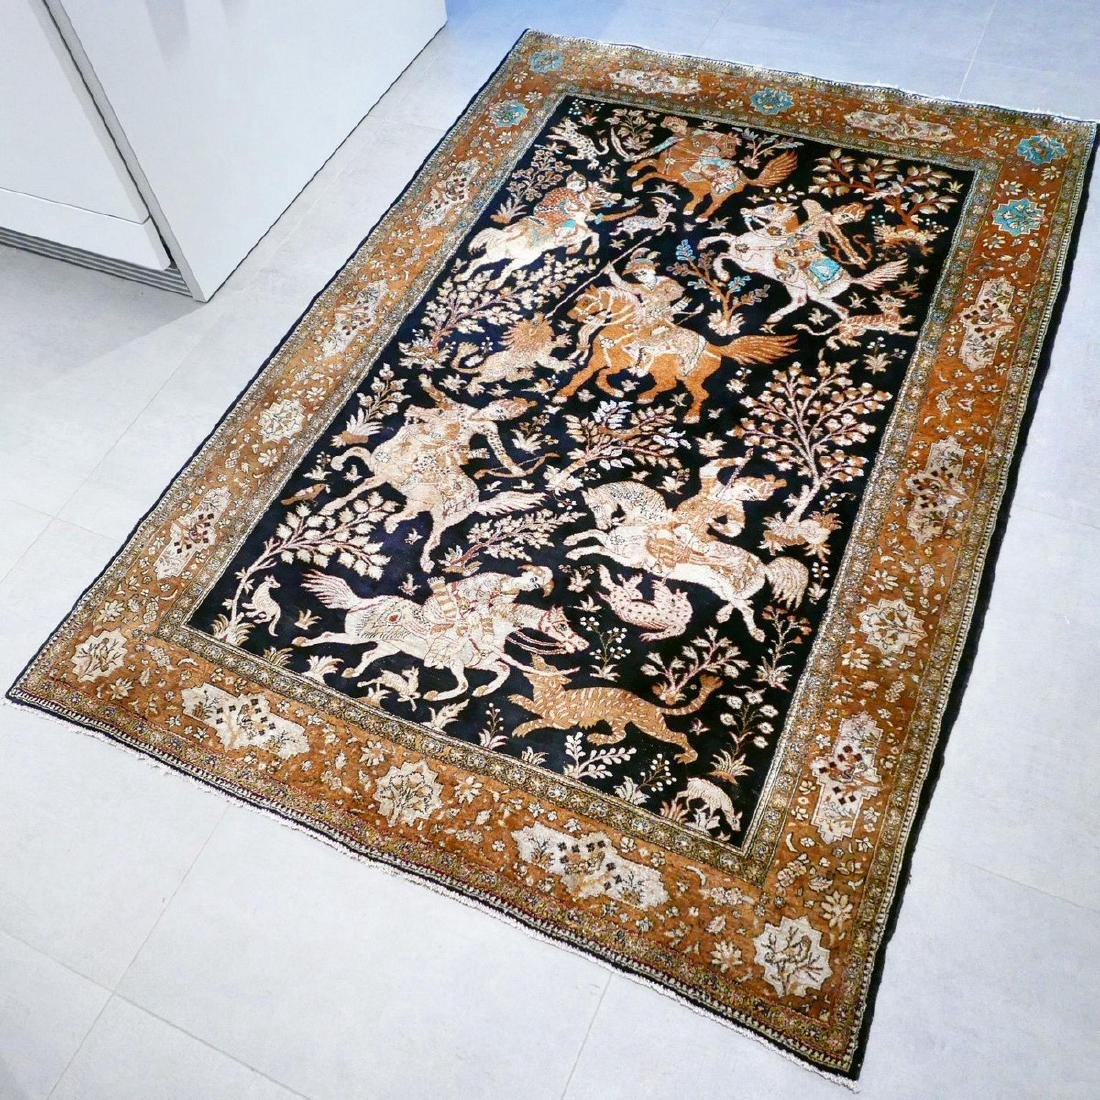 Hand Knotted Silk Hunting Scene Qum Rug 6.3x4.1 - 2